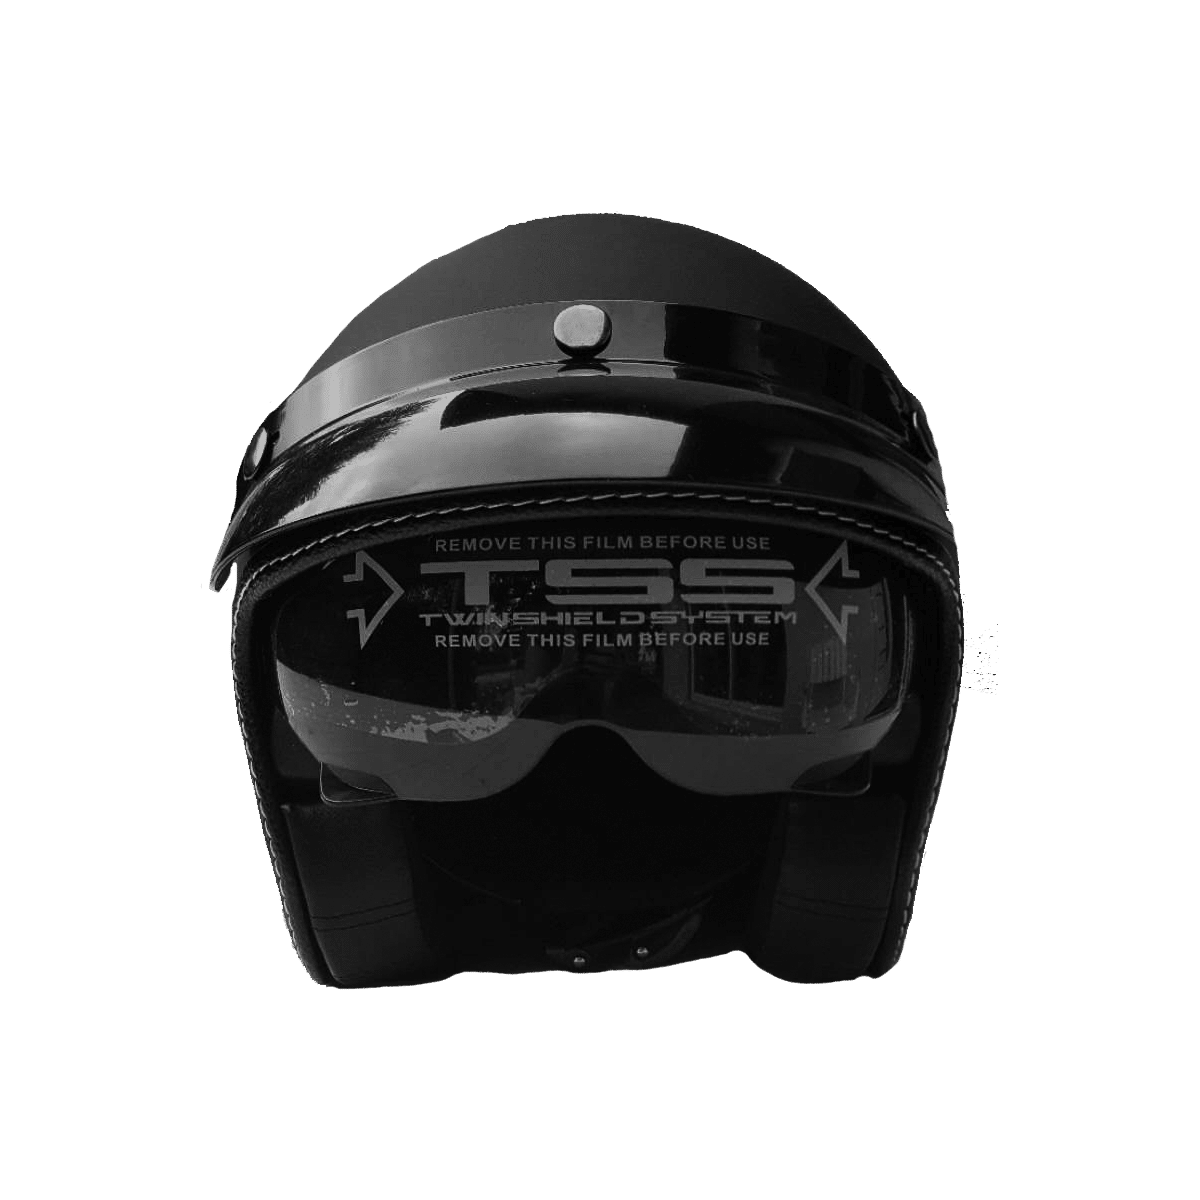 Casque Citycoco Caigiees